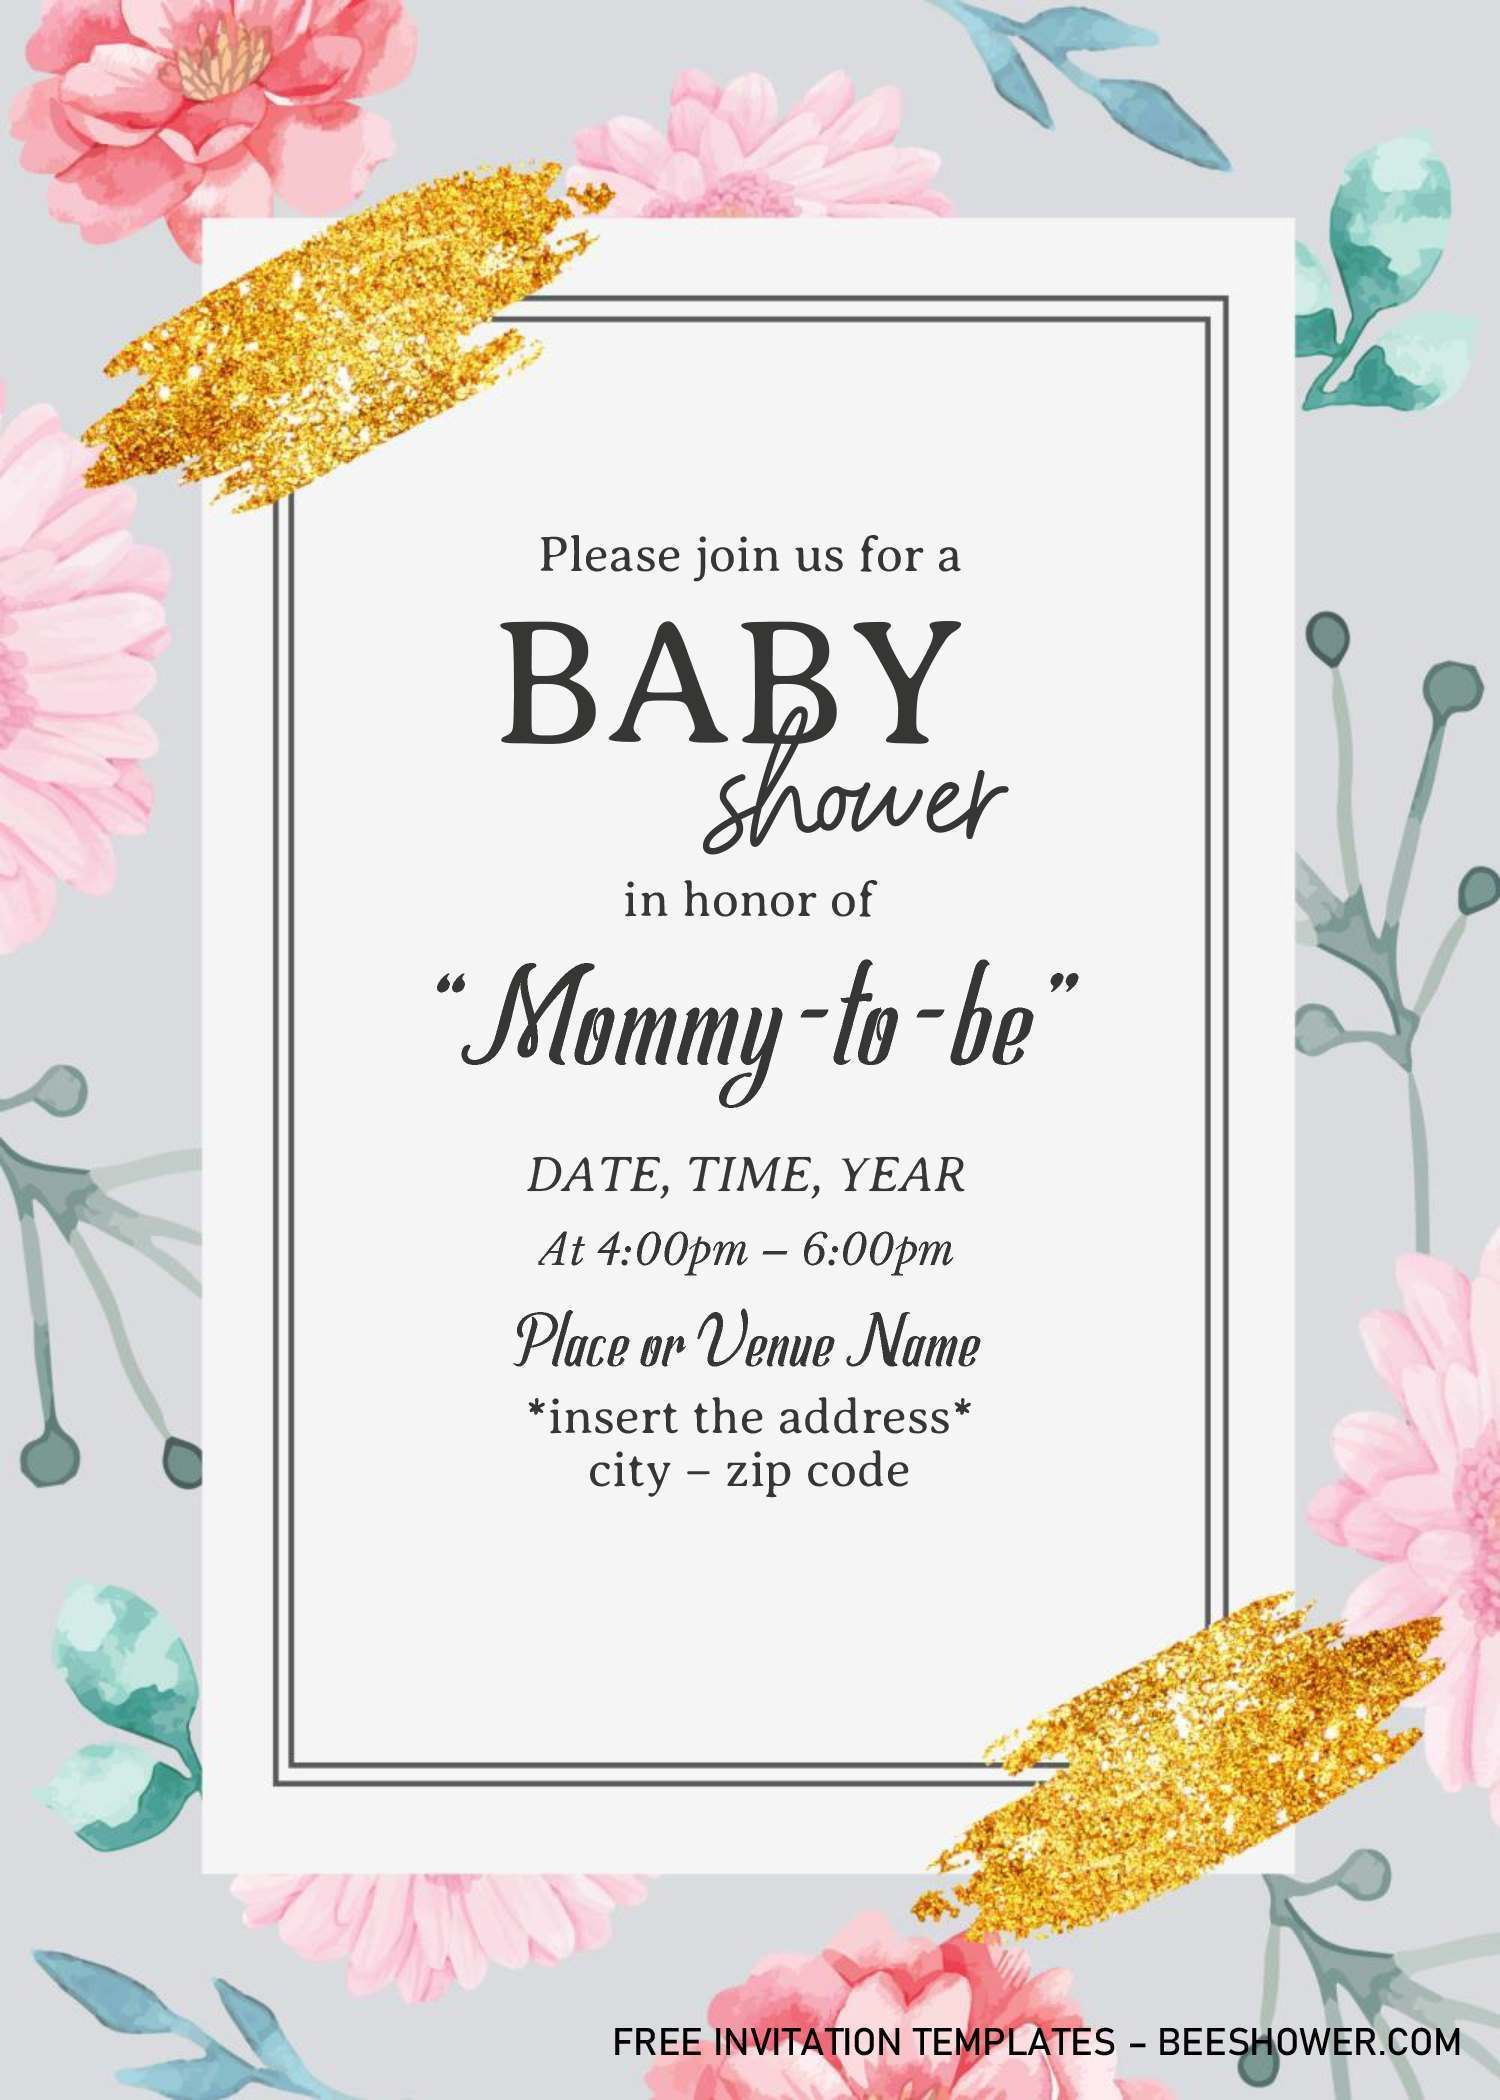 Blush Watercolor Baby Shower Invitation Templates Editable With Ms Wo Watercolor Baby Shower Invitations Baby Shower Invitation Templates Invitation Template